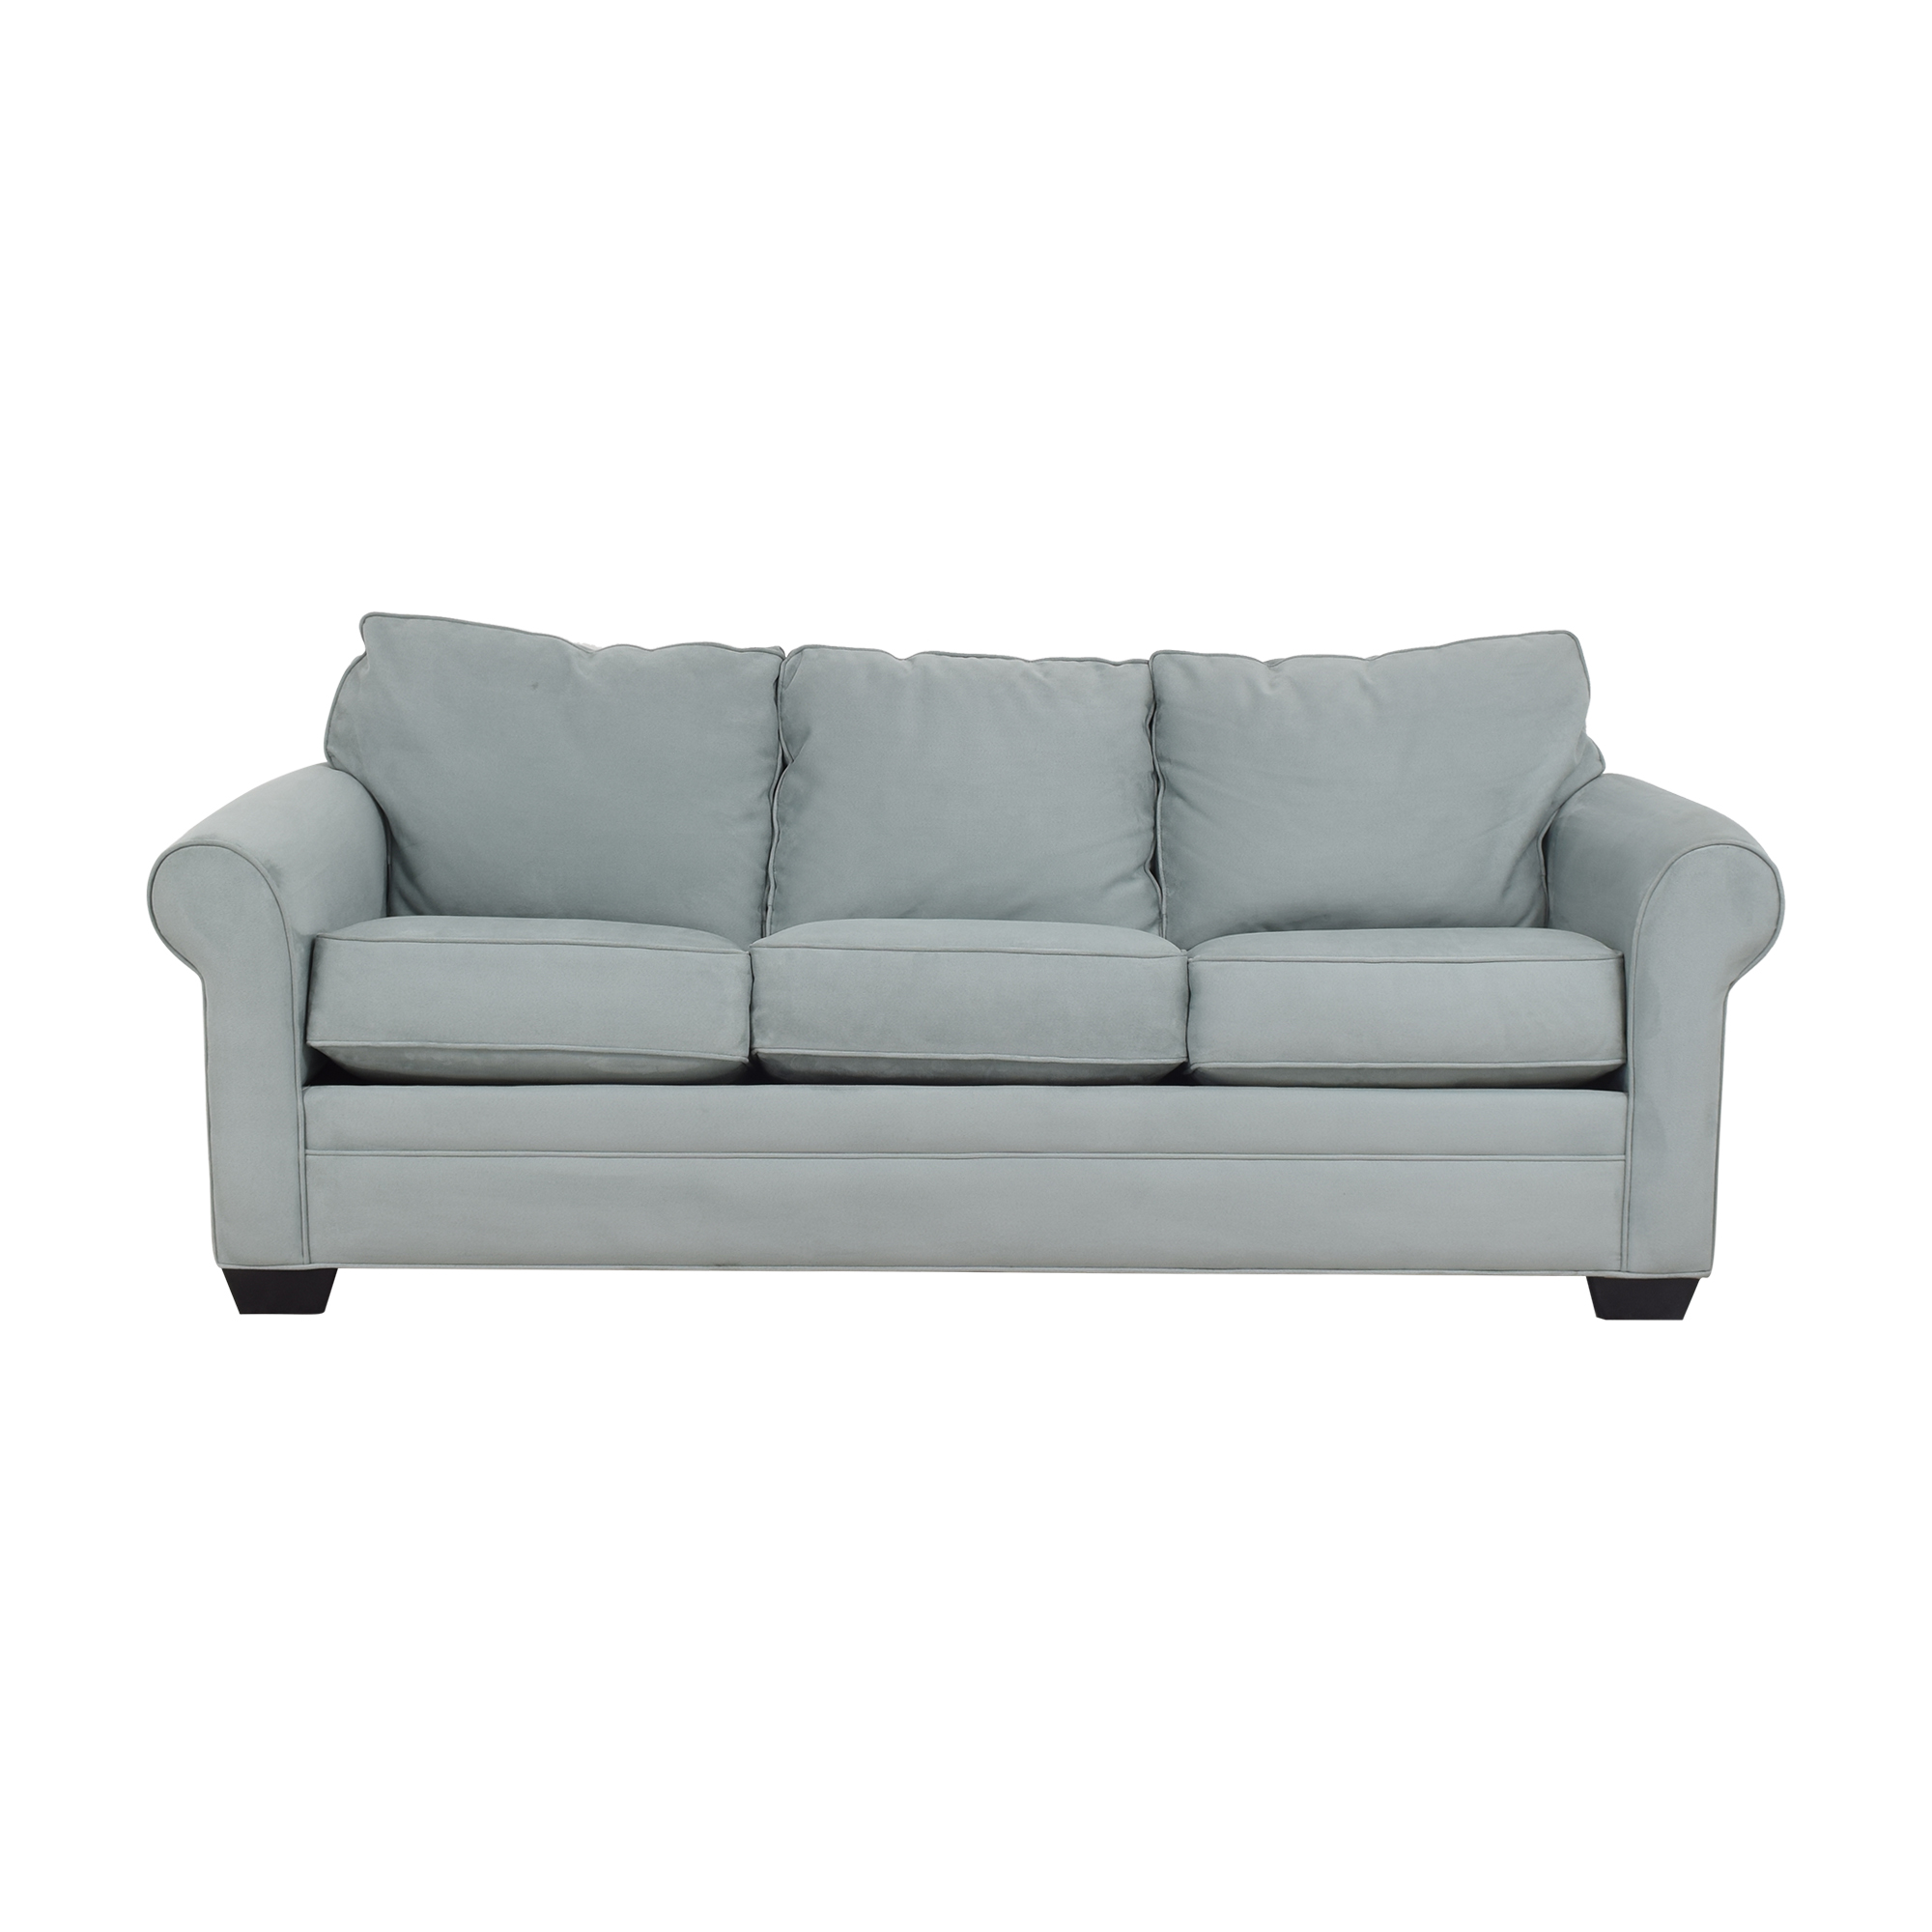 Cindy Crawford Home Cindy Crawford Home Bellingham Sleeper Sofa blue